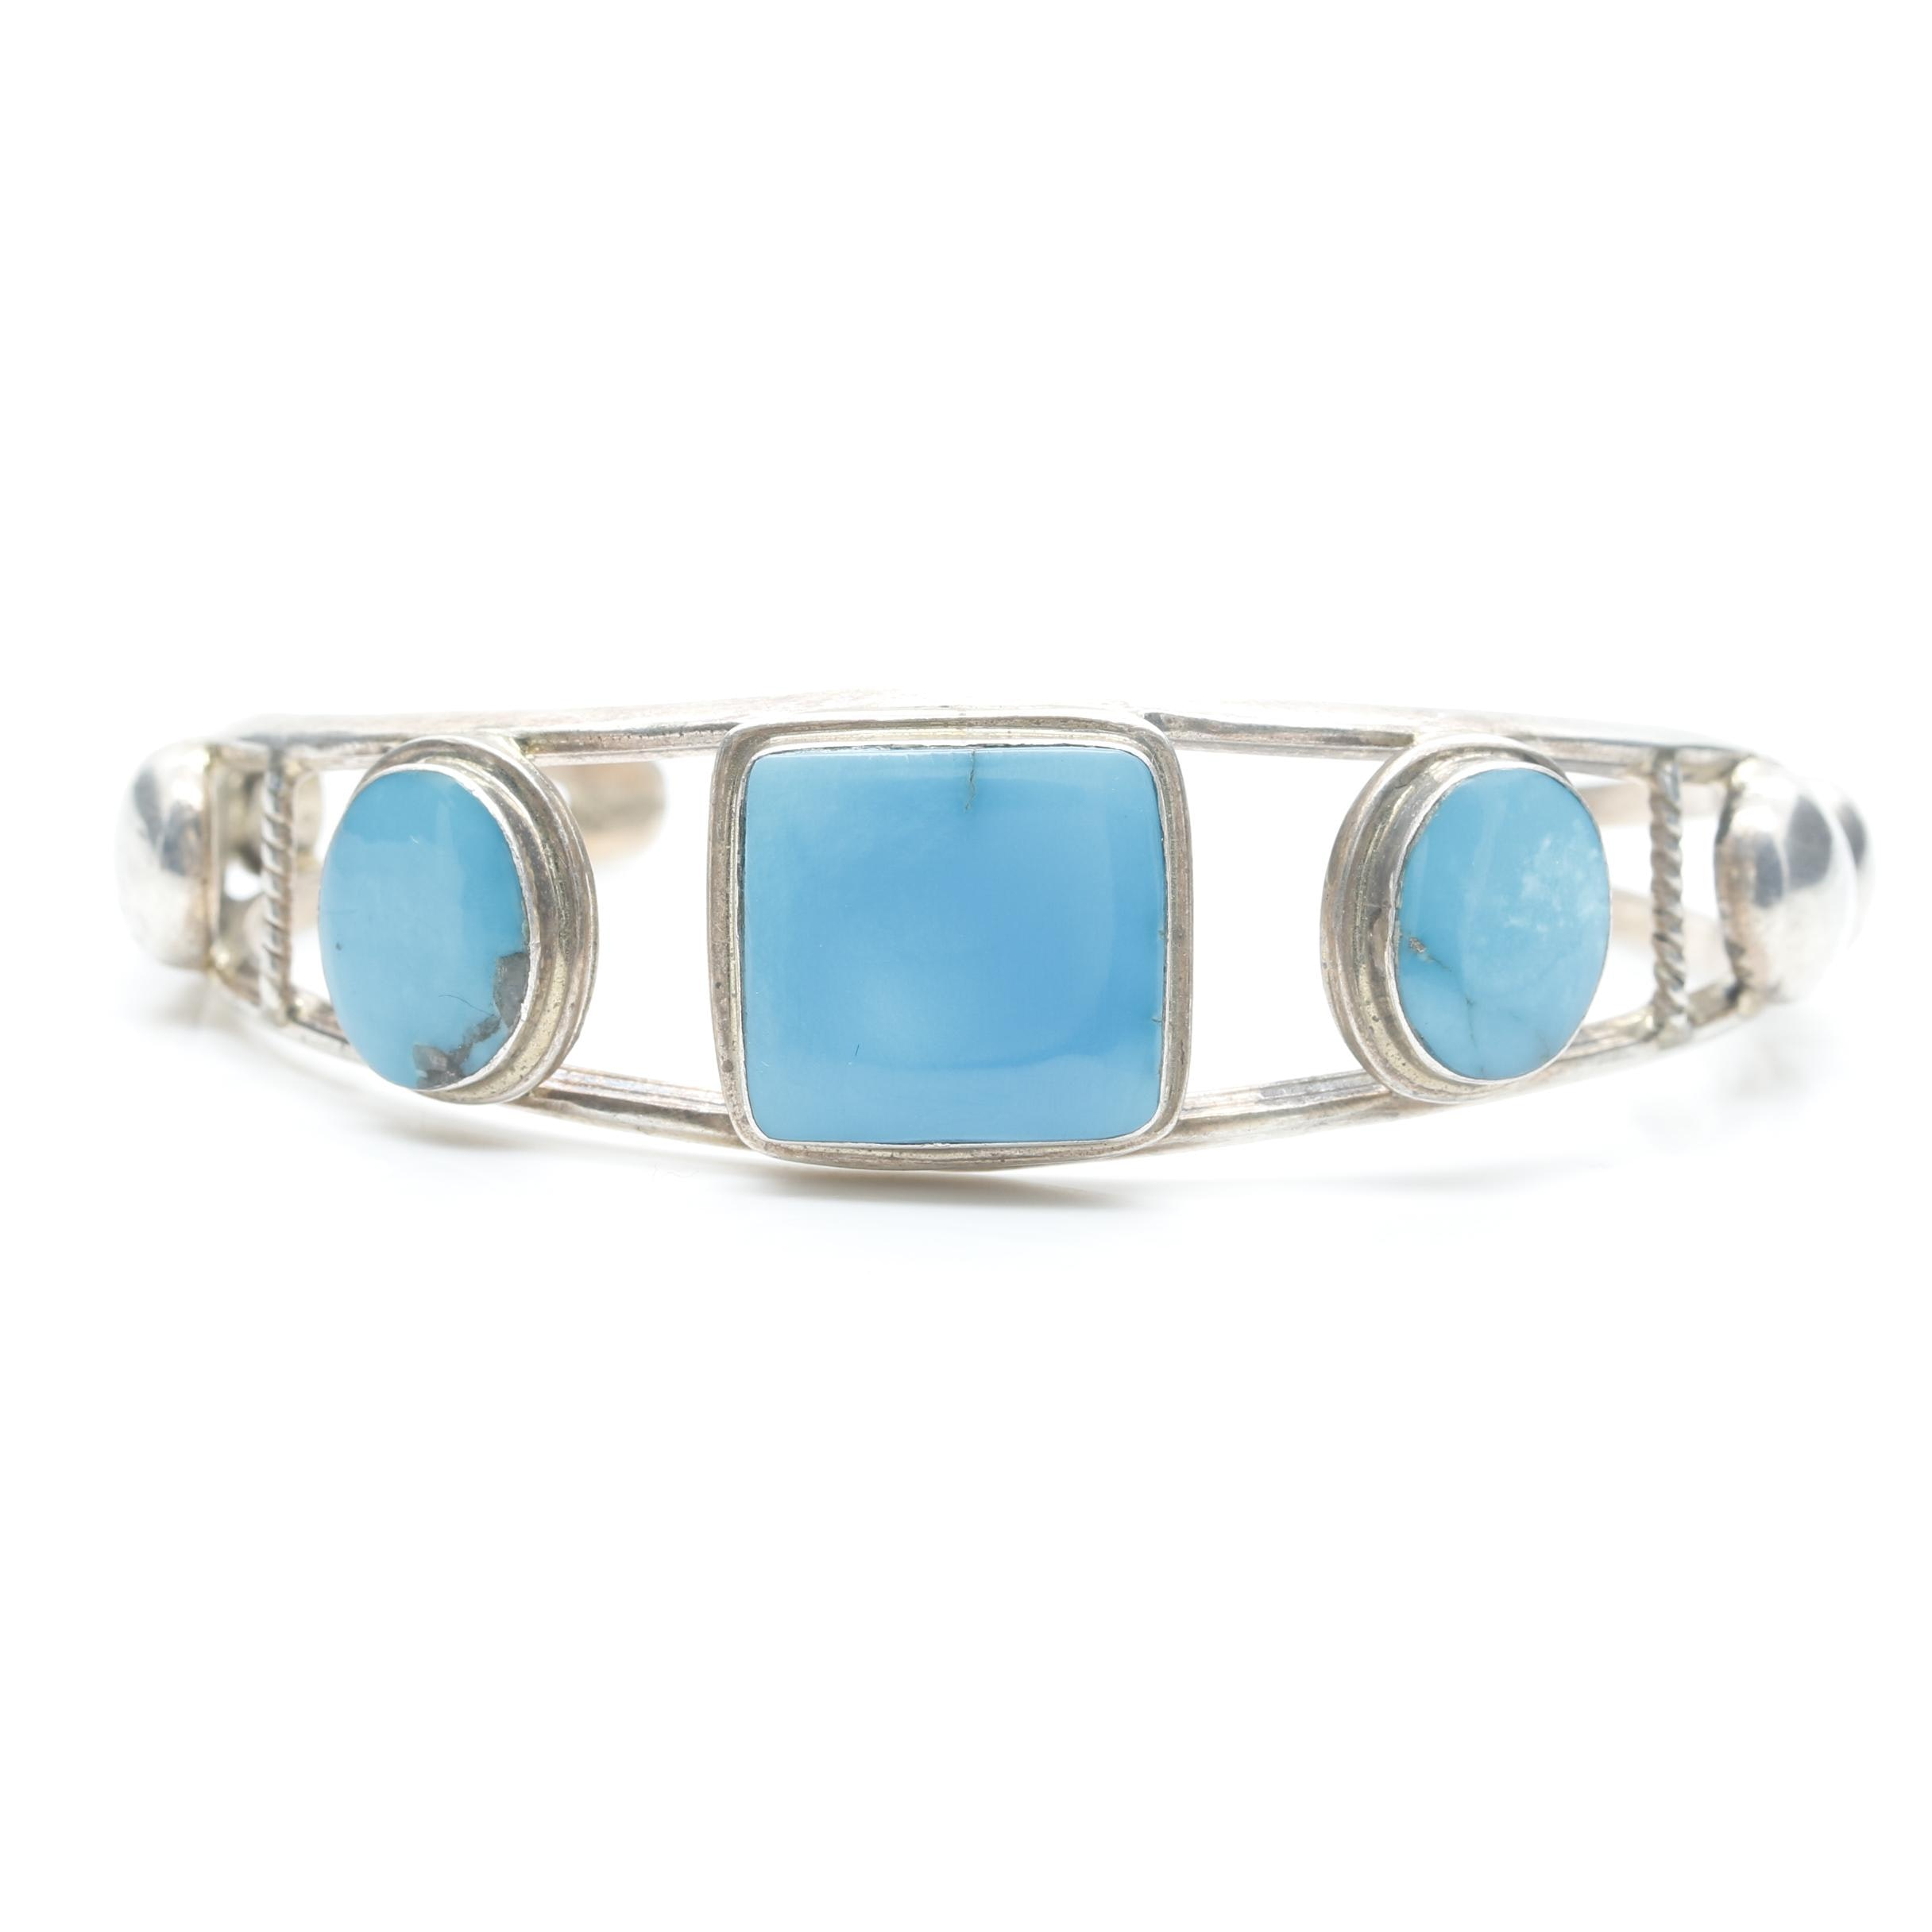 Marc Begay Navajo Diné Sterling Silver Turquoise Cuff Bracelet